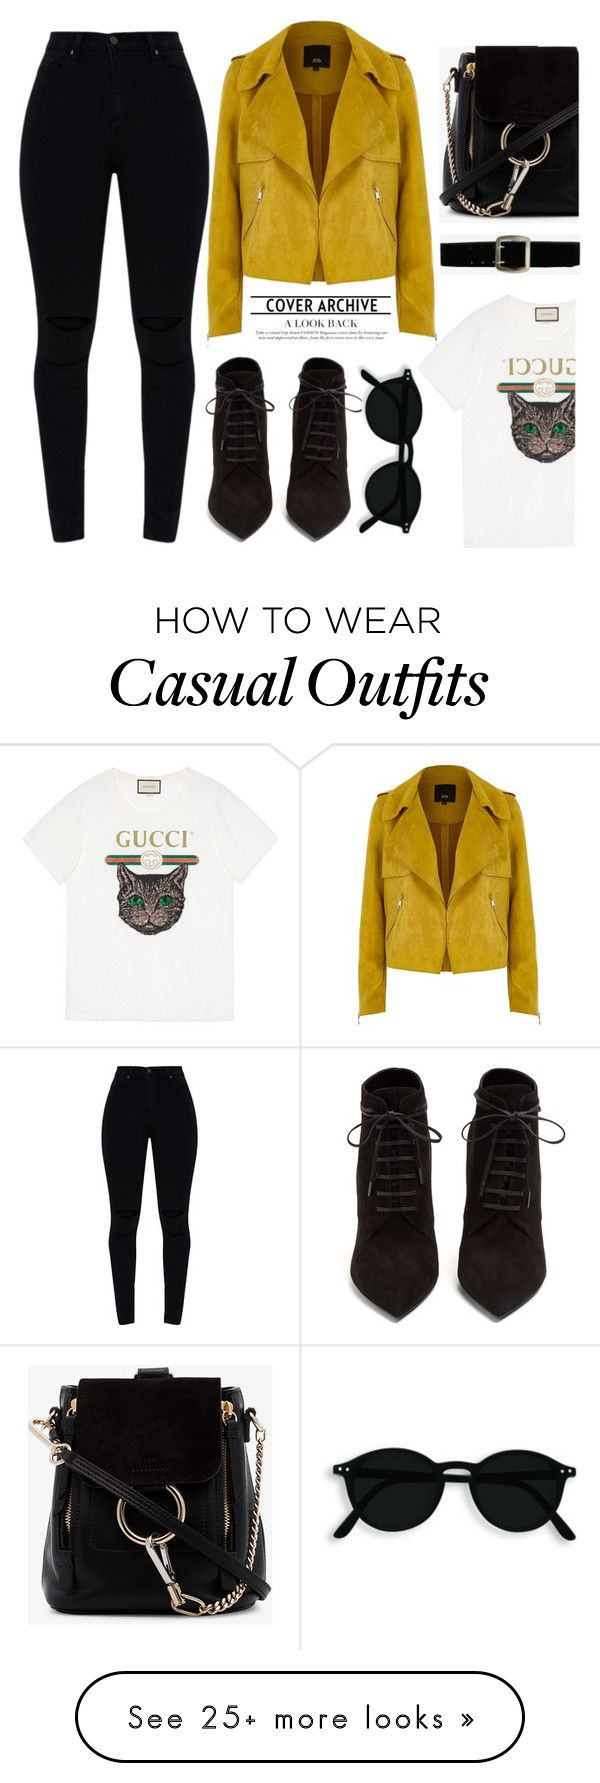 """""""Get Casual"""" by melaniemeran on Polyvore featuring River Island, Gucci, Yves Saint Laurent, Chloé, Express, PopsOfYellow and NYFWYellow"""